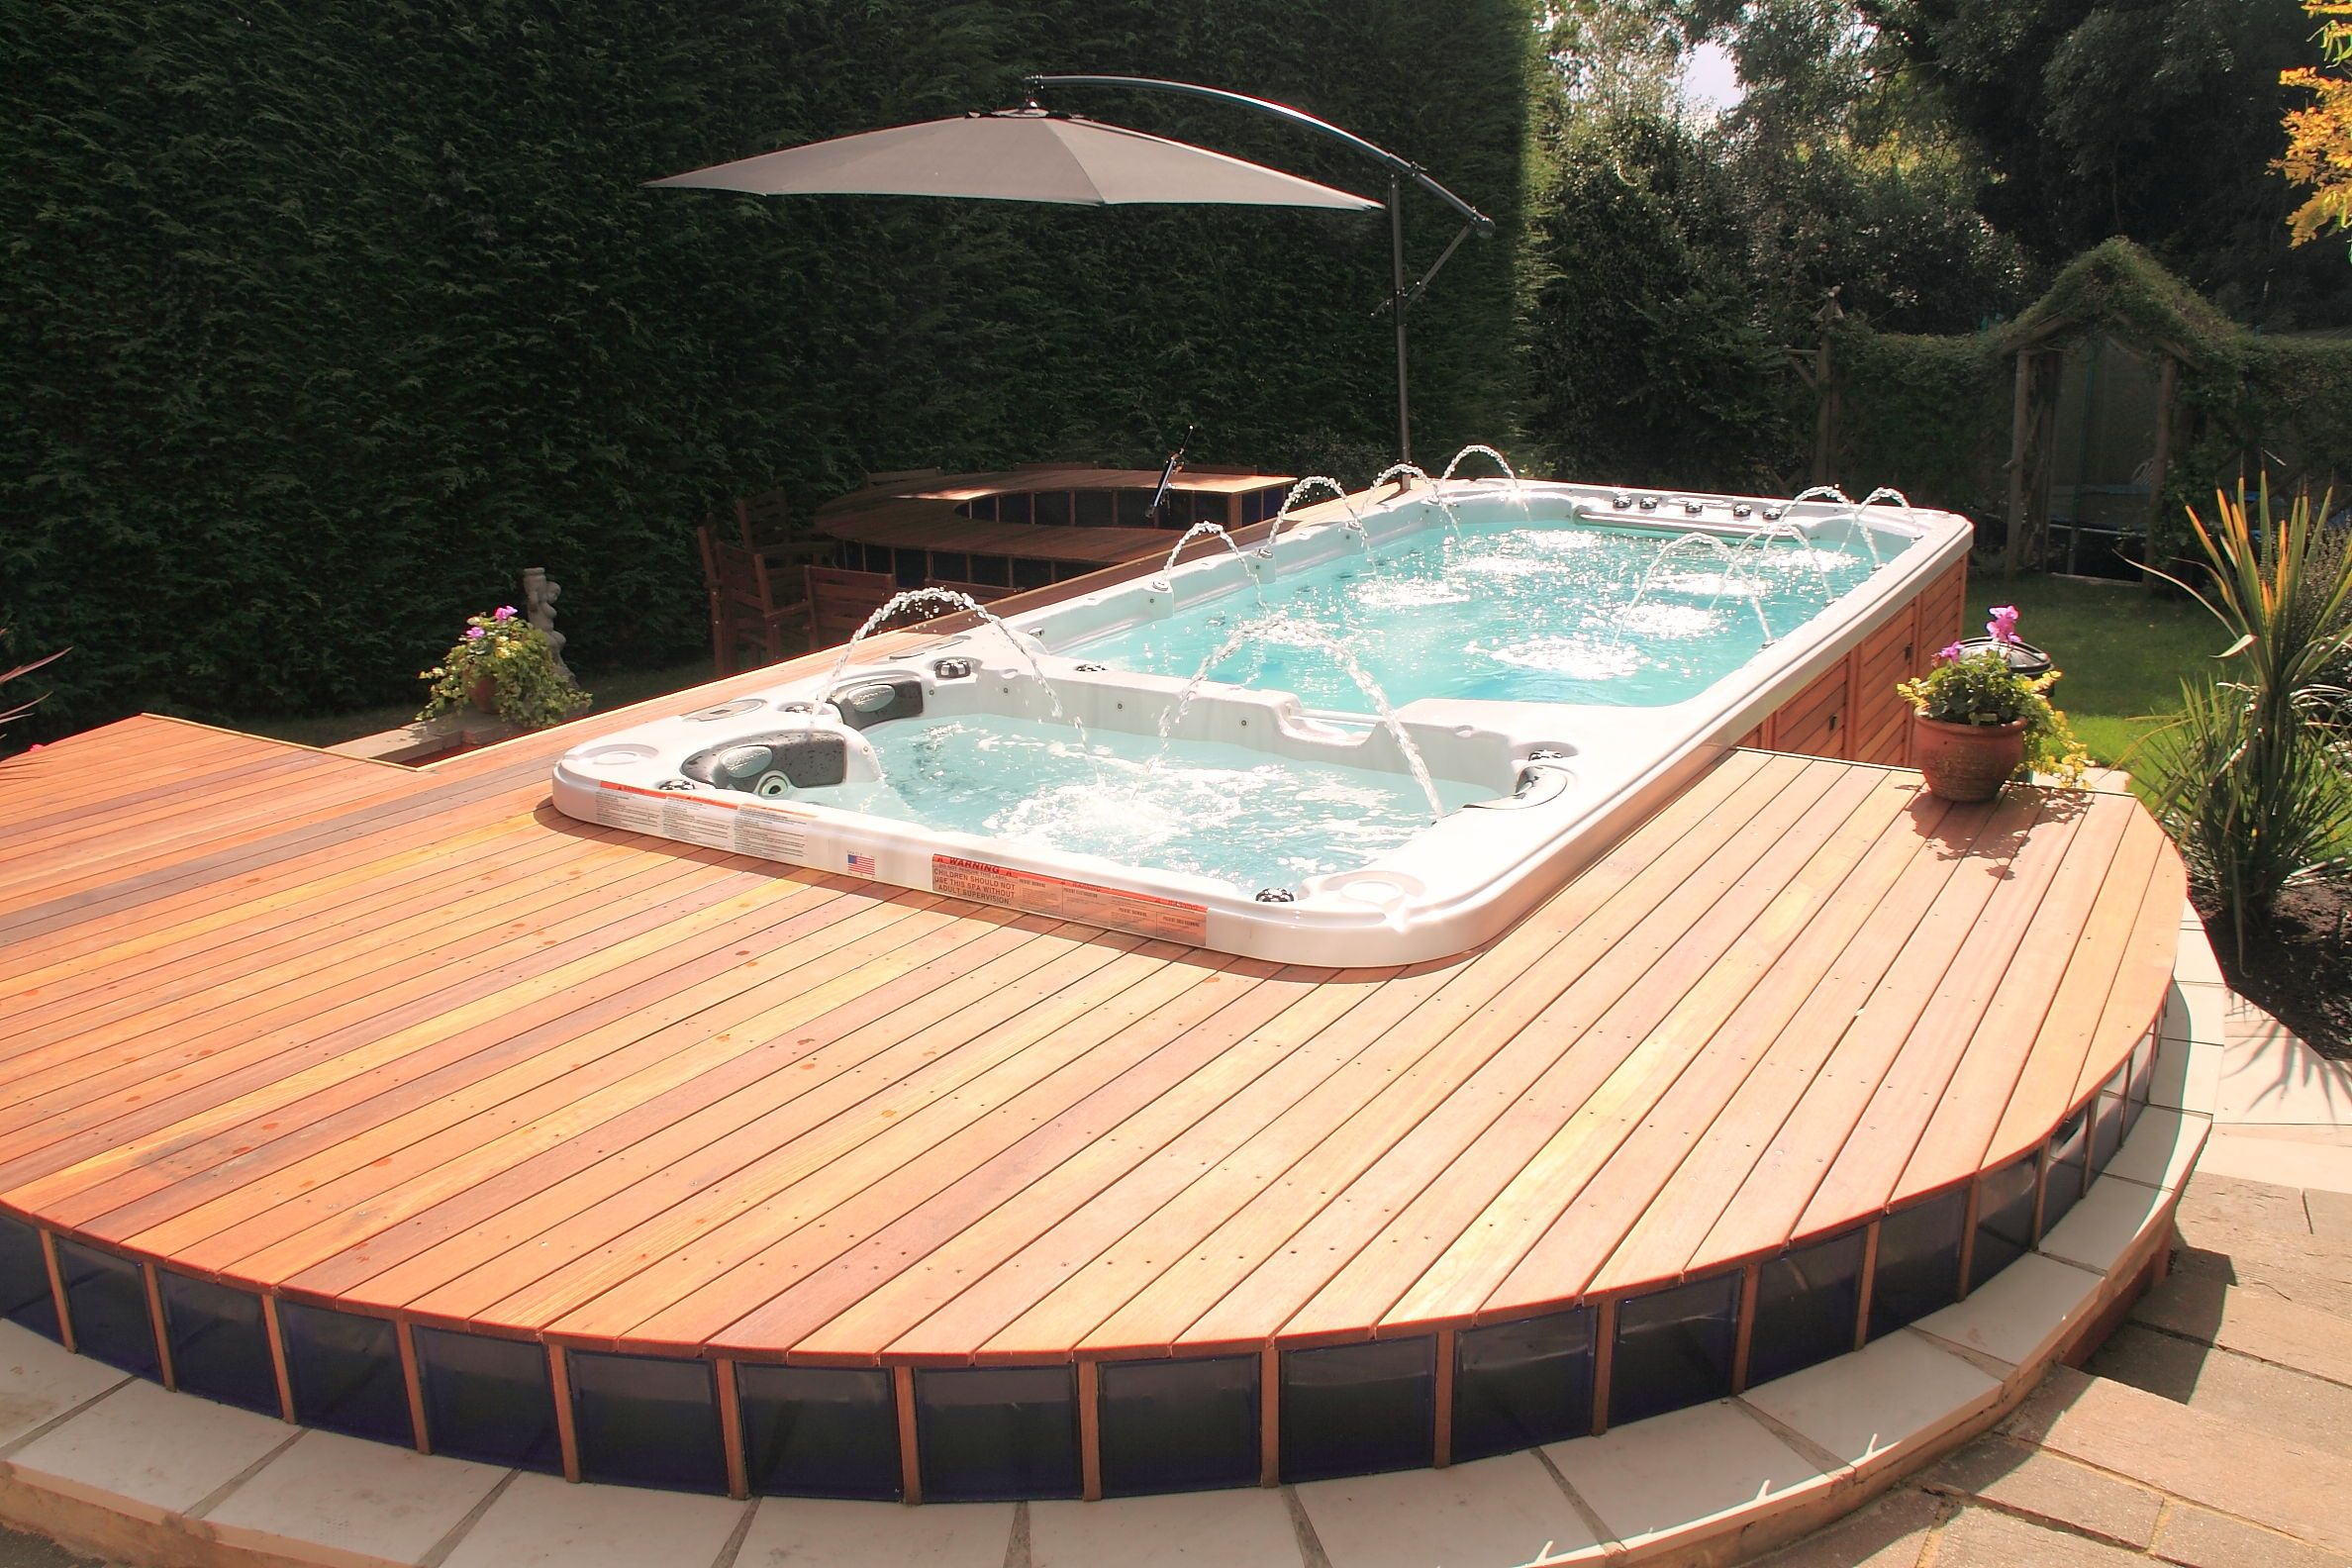 Jacuzzi Pool Installation Pin By Galaxy Homerecreation On Installations Outdoor Pool Hot